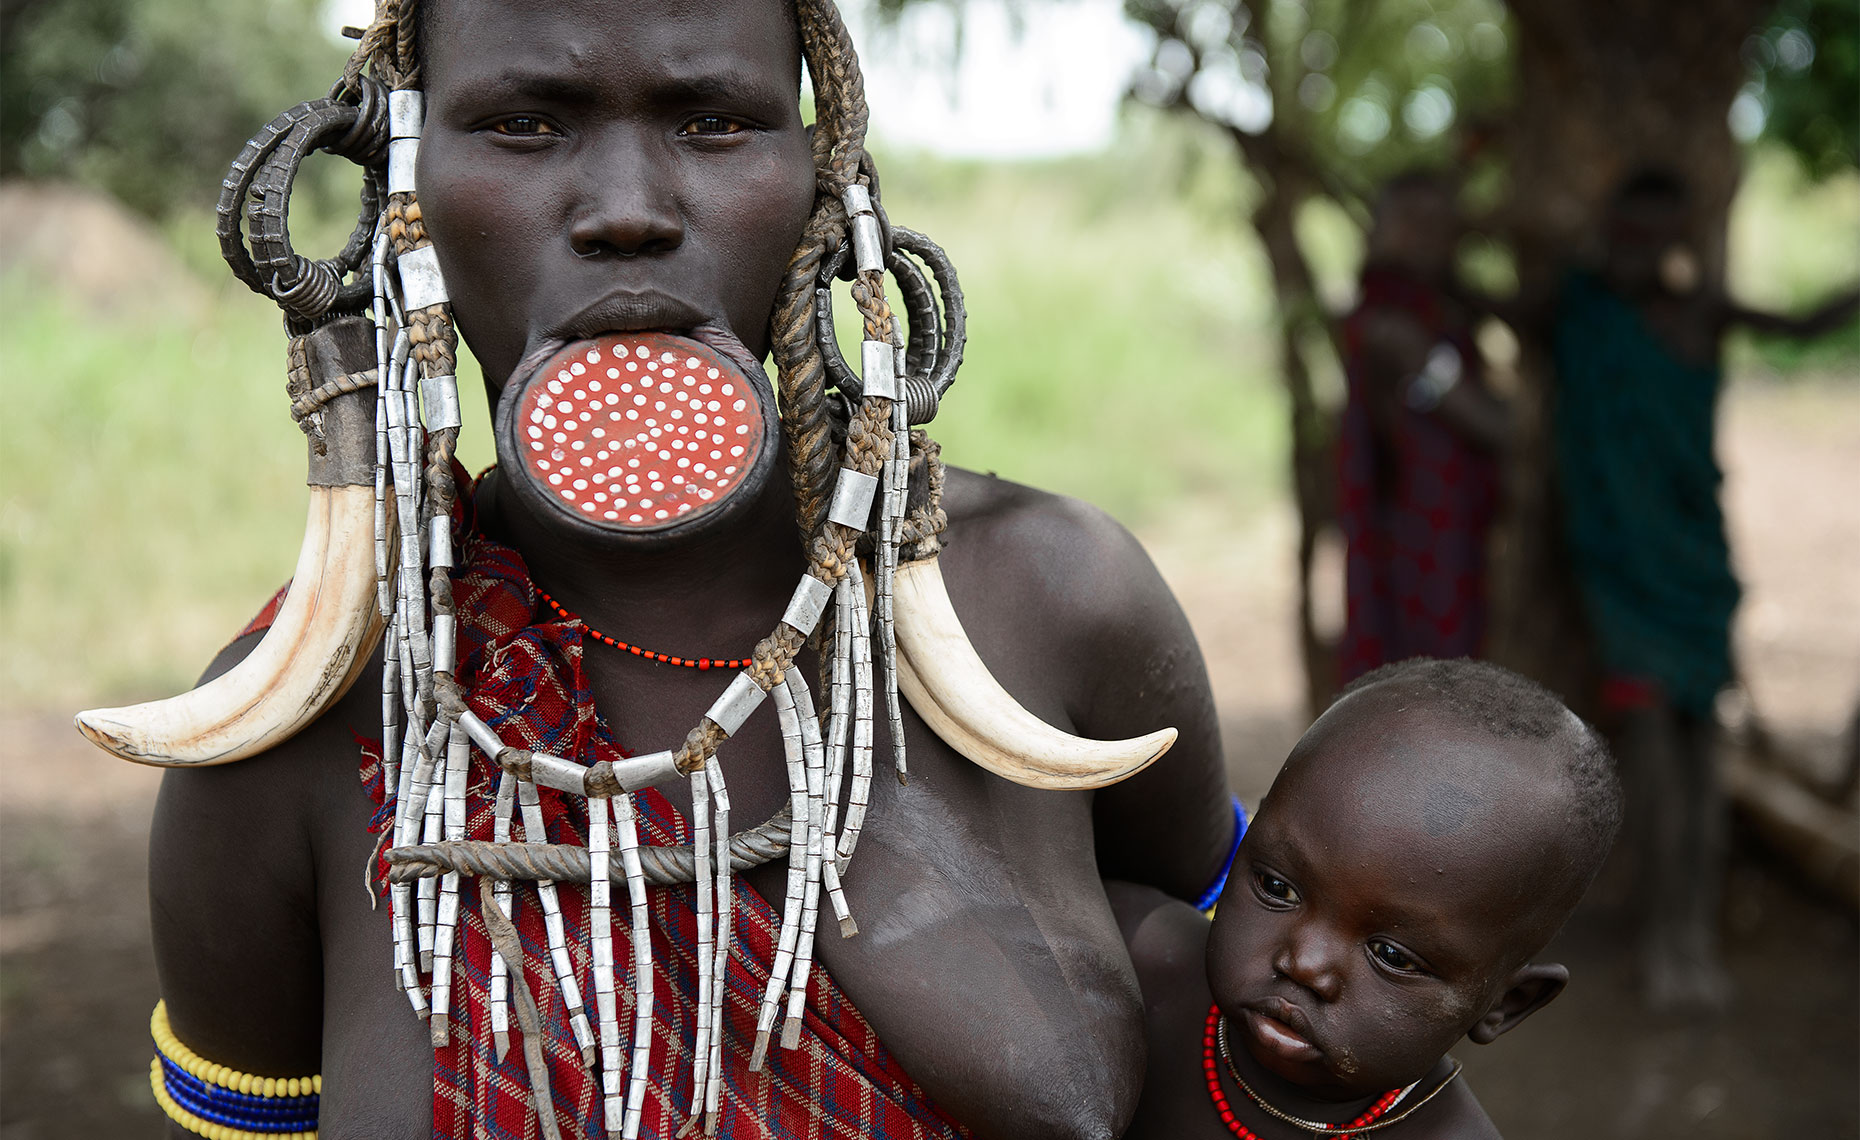 mursi tribe girl with lip plate at mago park, ethiopia